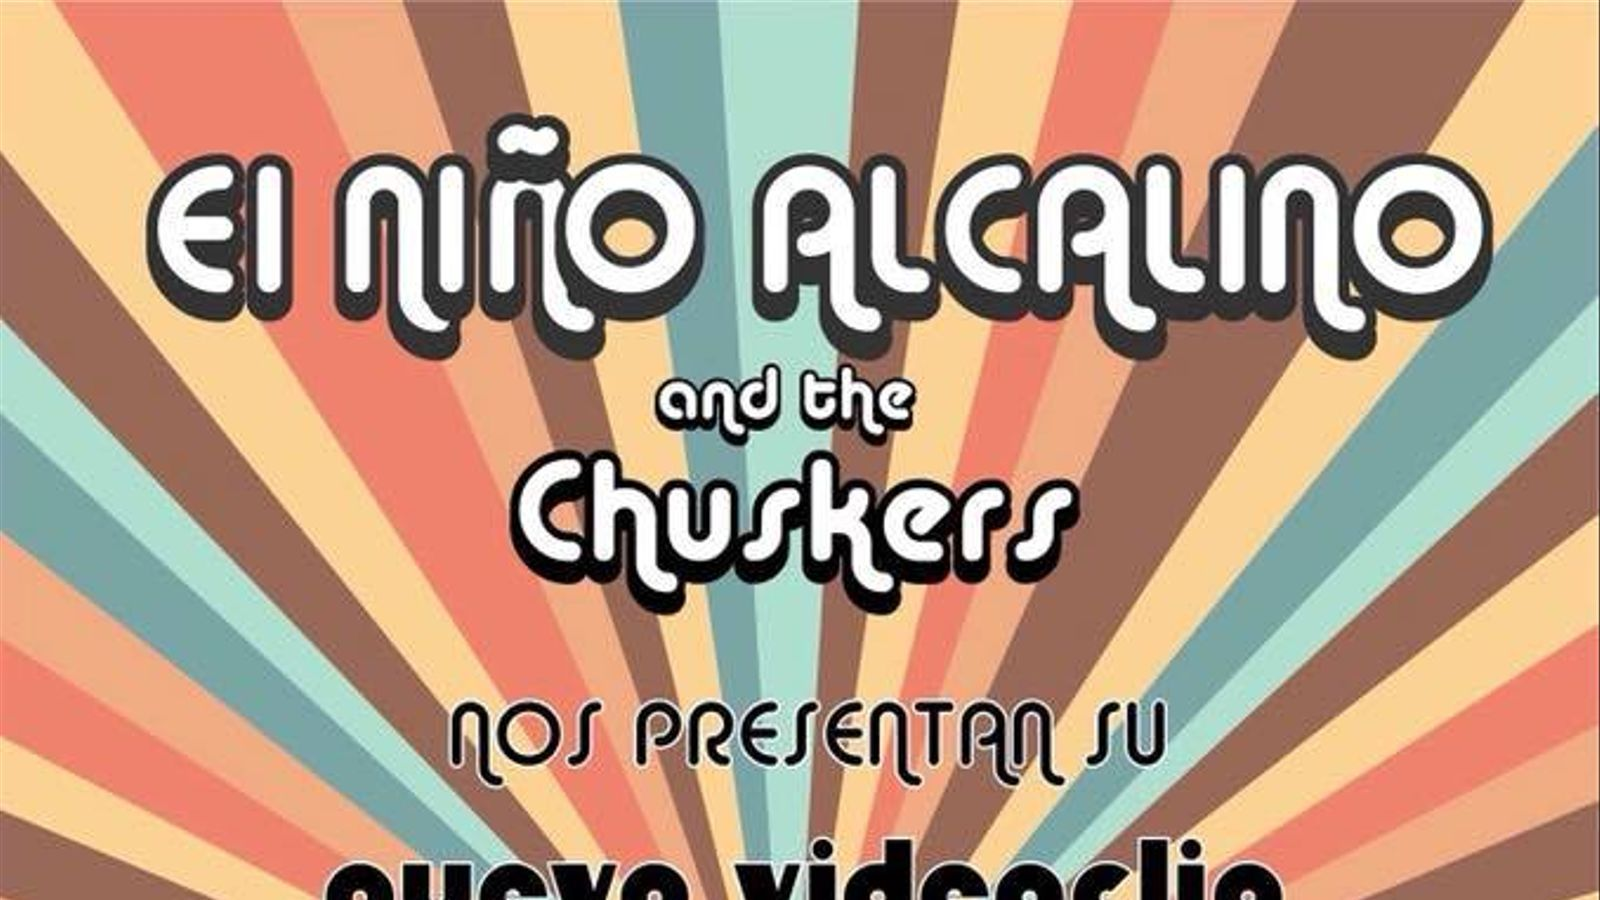 El Niño Alcalino and the Chuskers presenten 'Afrofrit'.